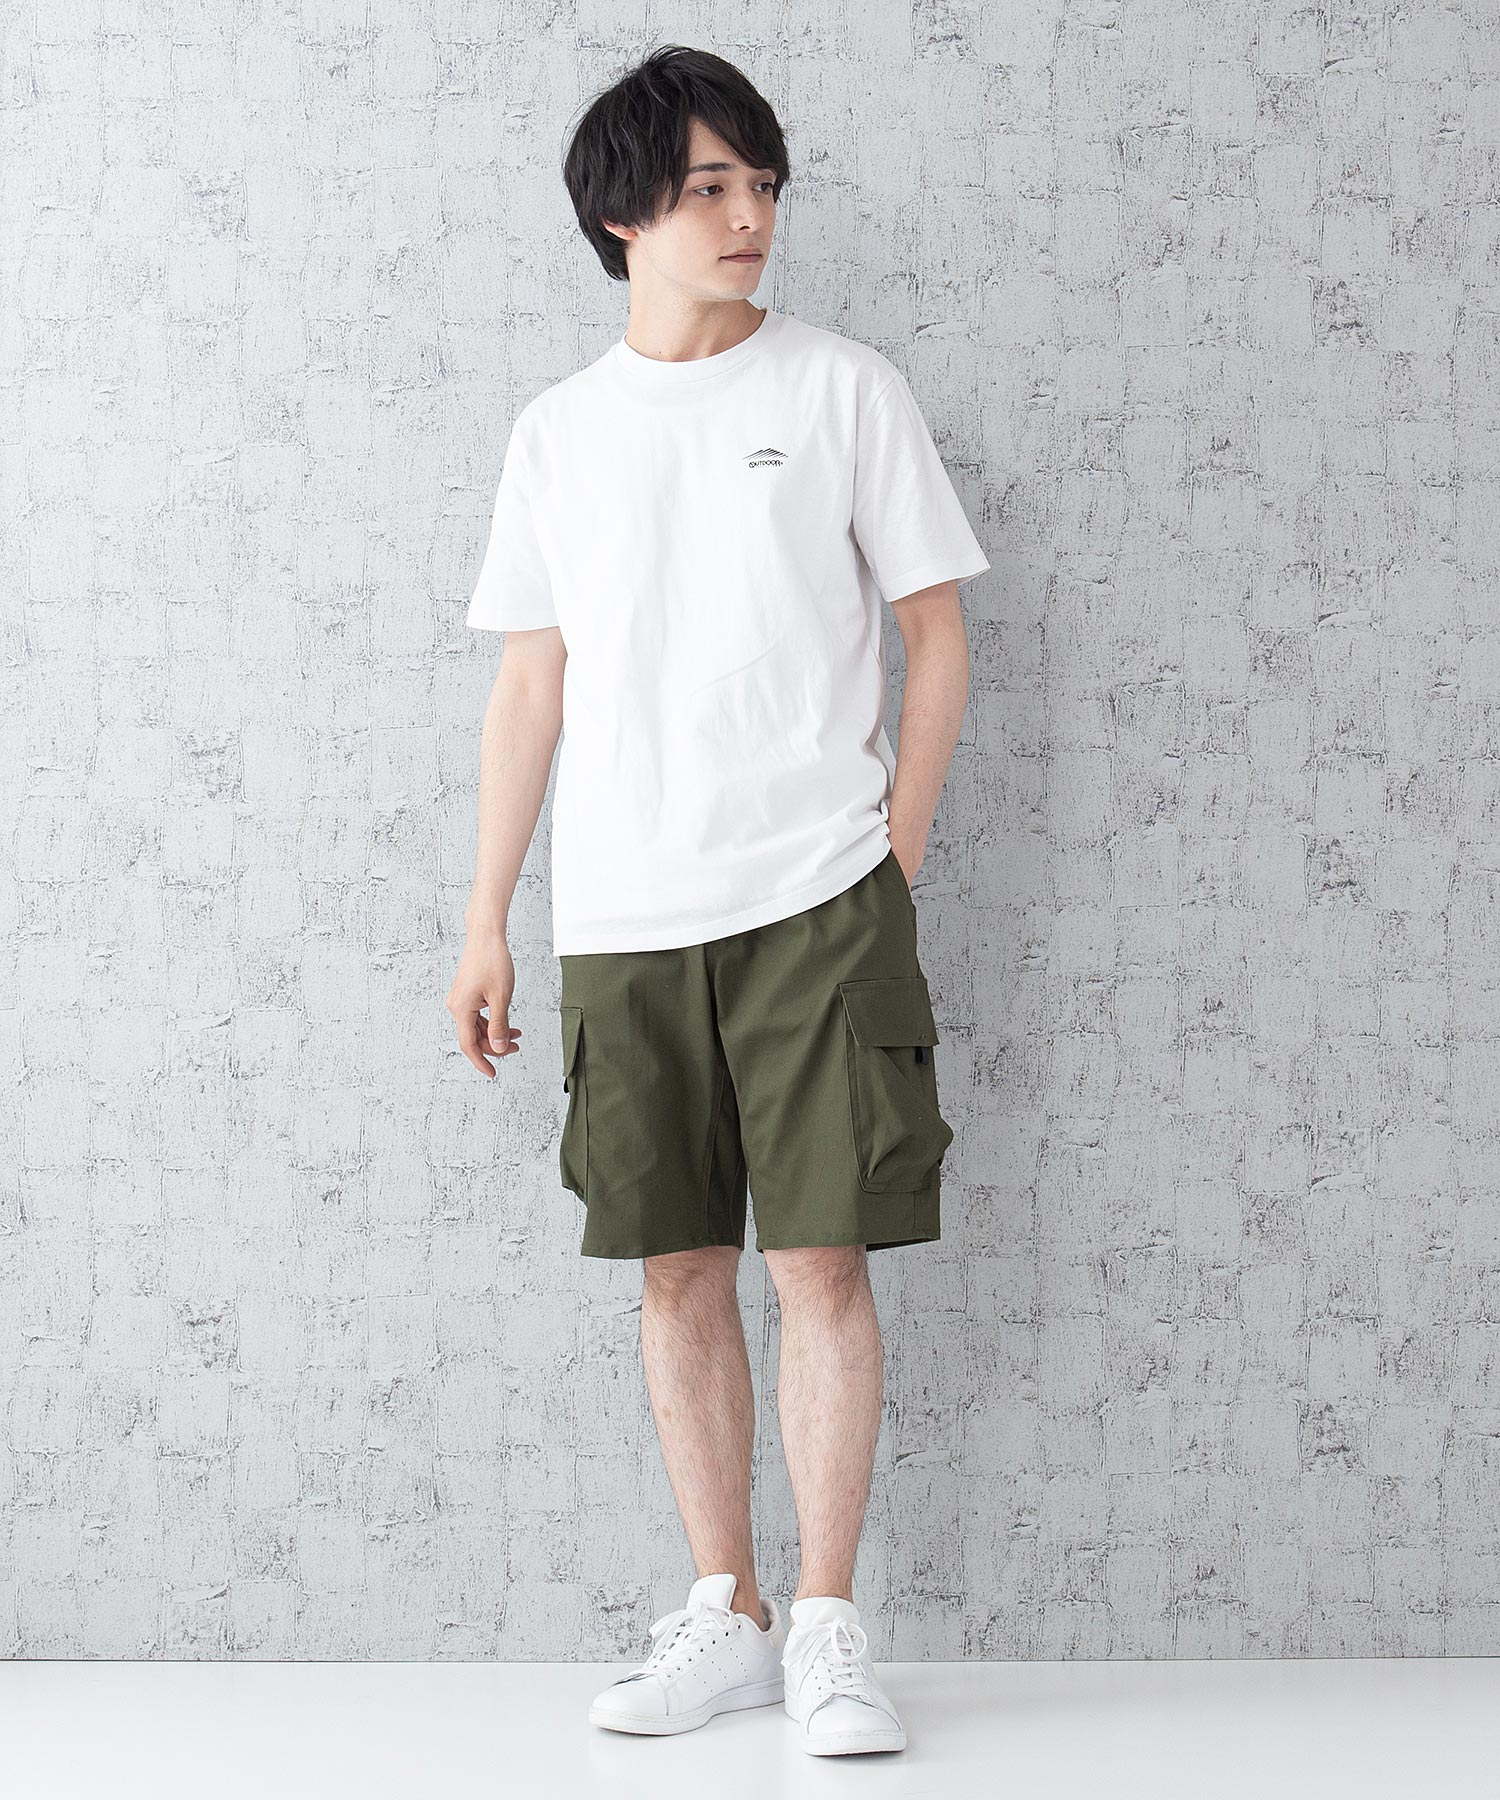 OUTDOOR PRODUCTS APPAREL エンボスロゴTシャツ